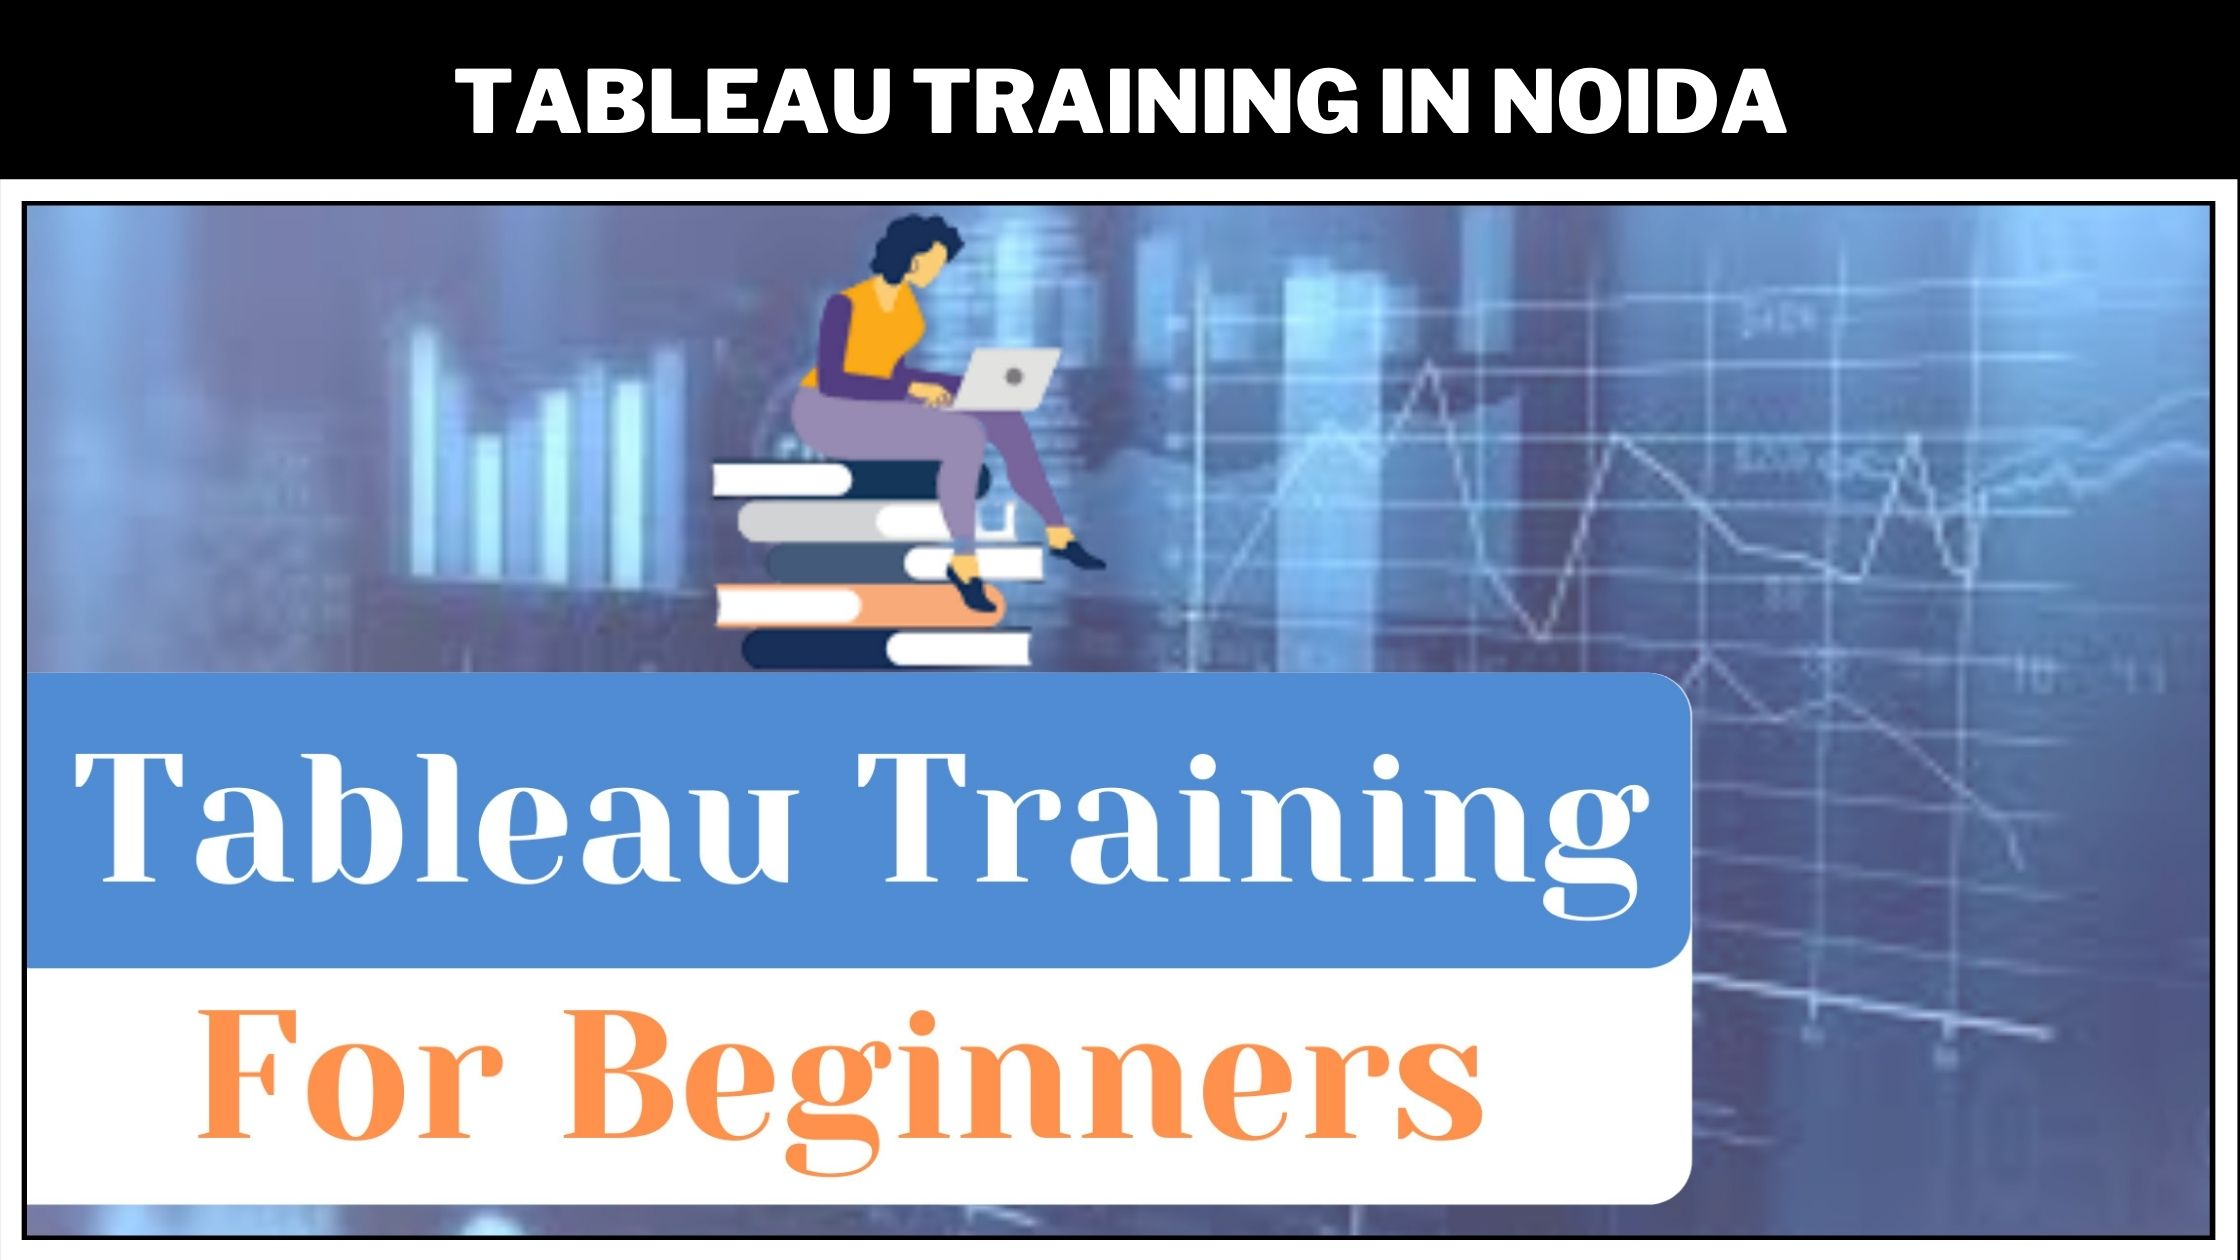 tableau training_in_noida-background.jpeg